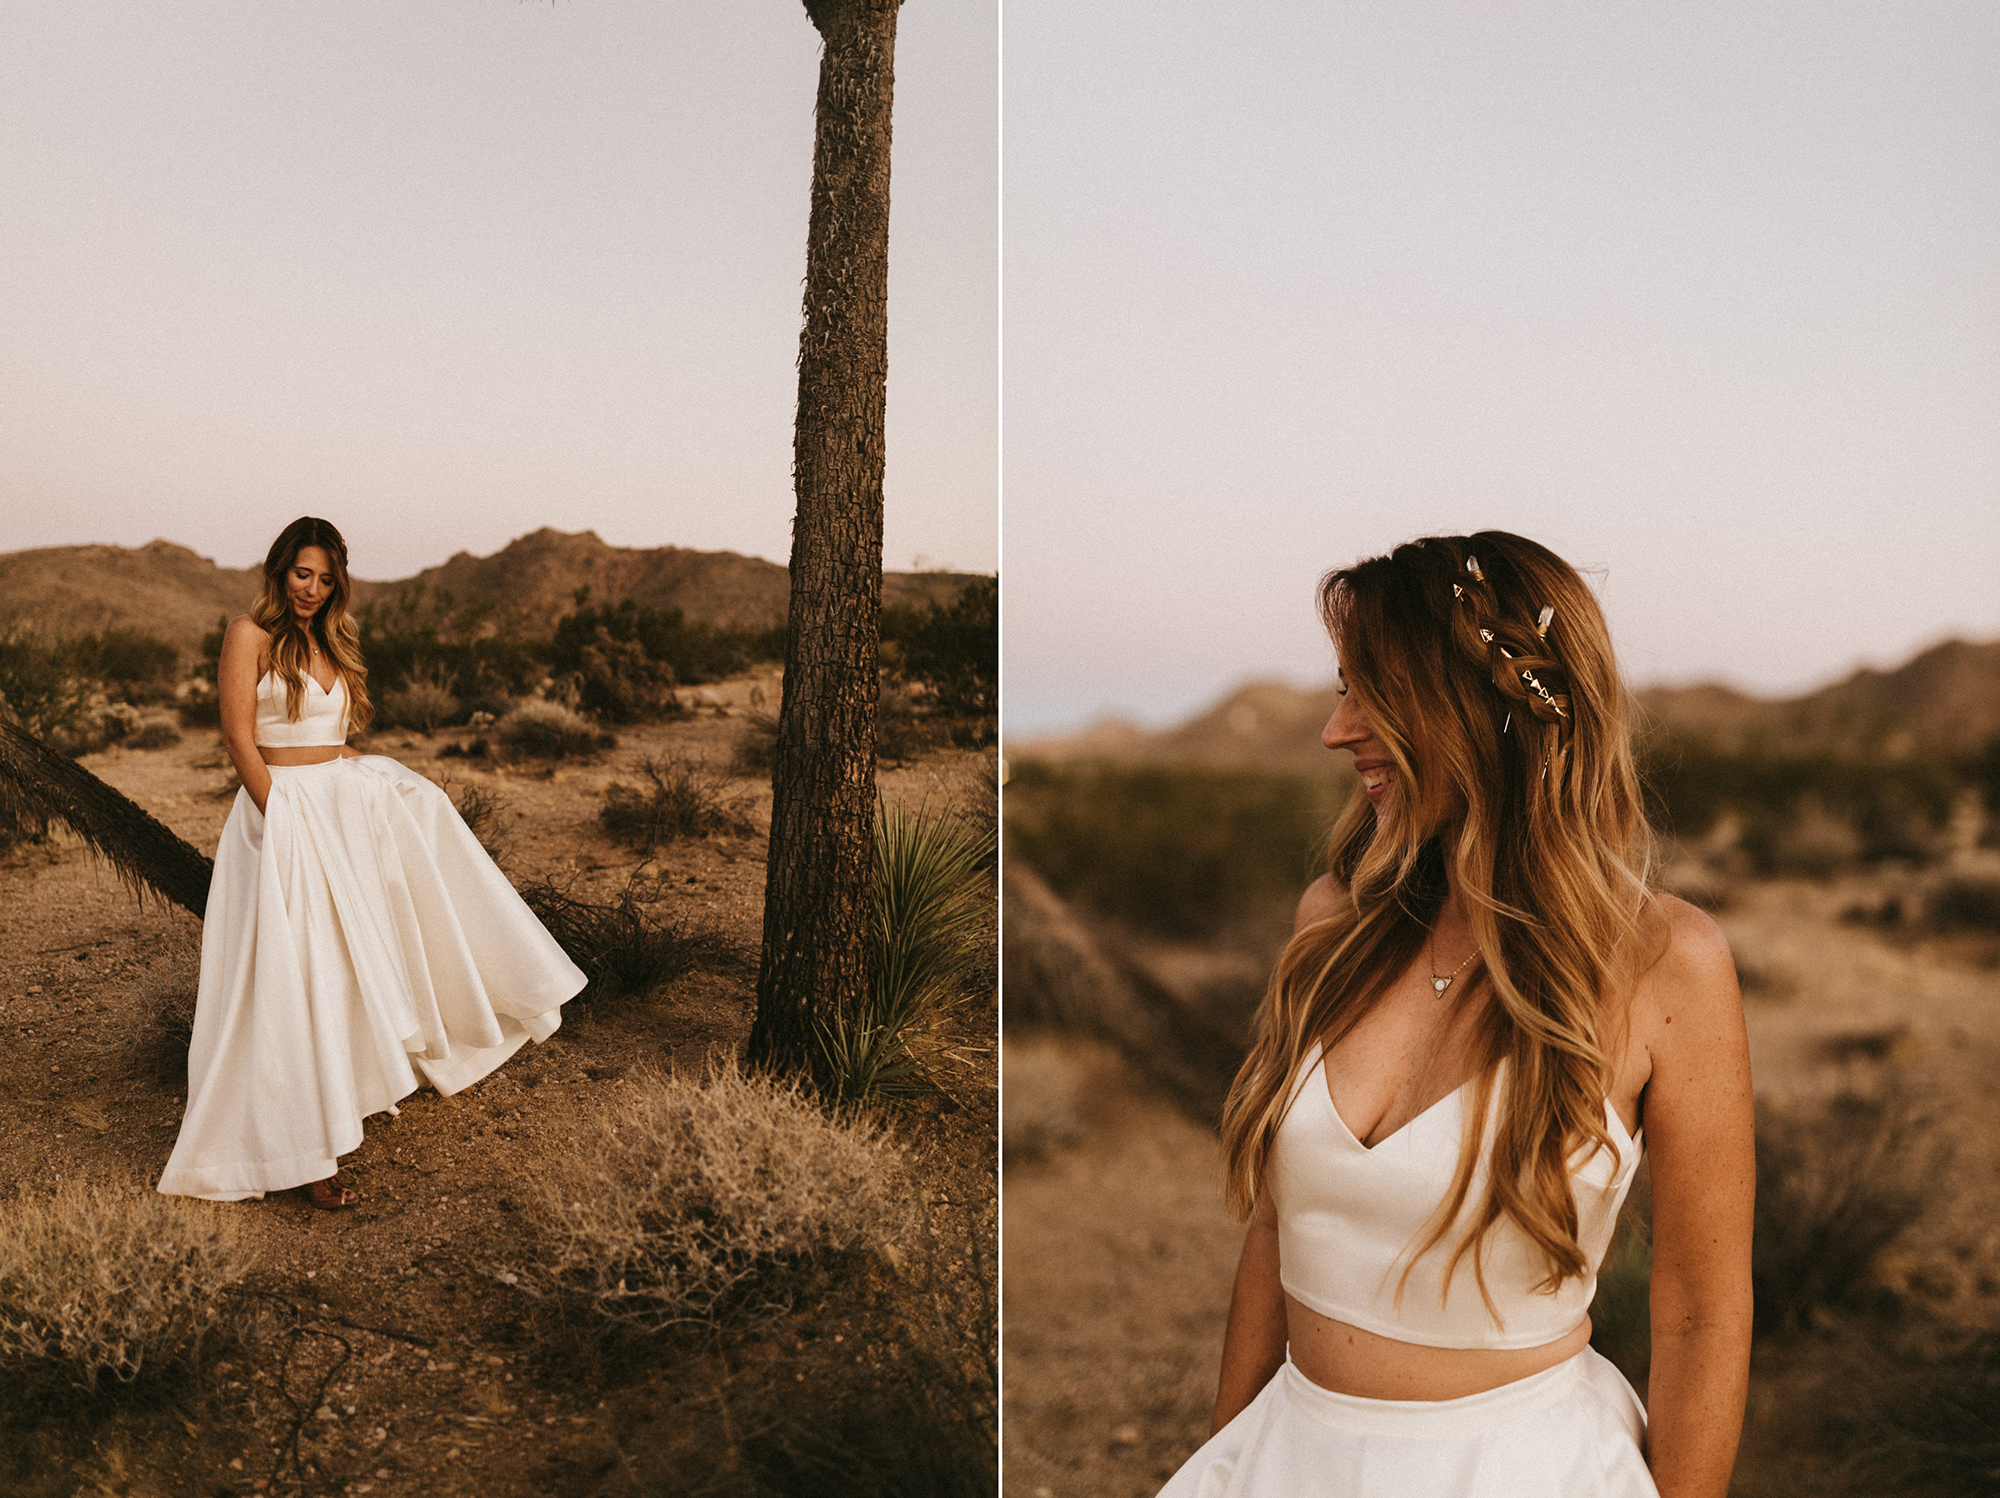 sacred_sands_joshua_tree_wedding-76.jpg